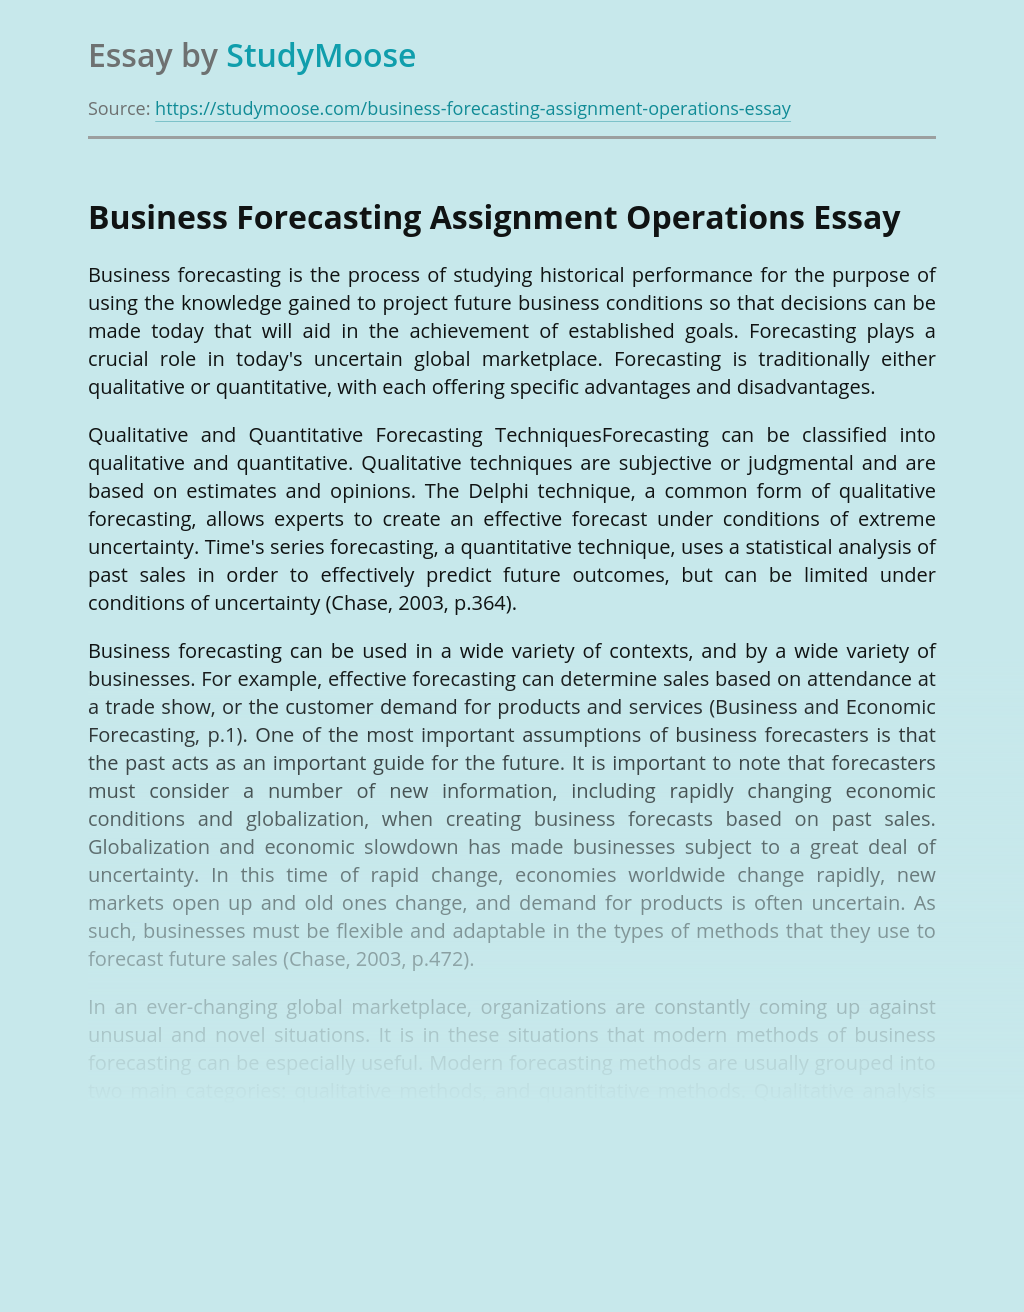 Business Forecasting Assignment Operations